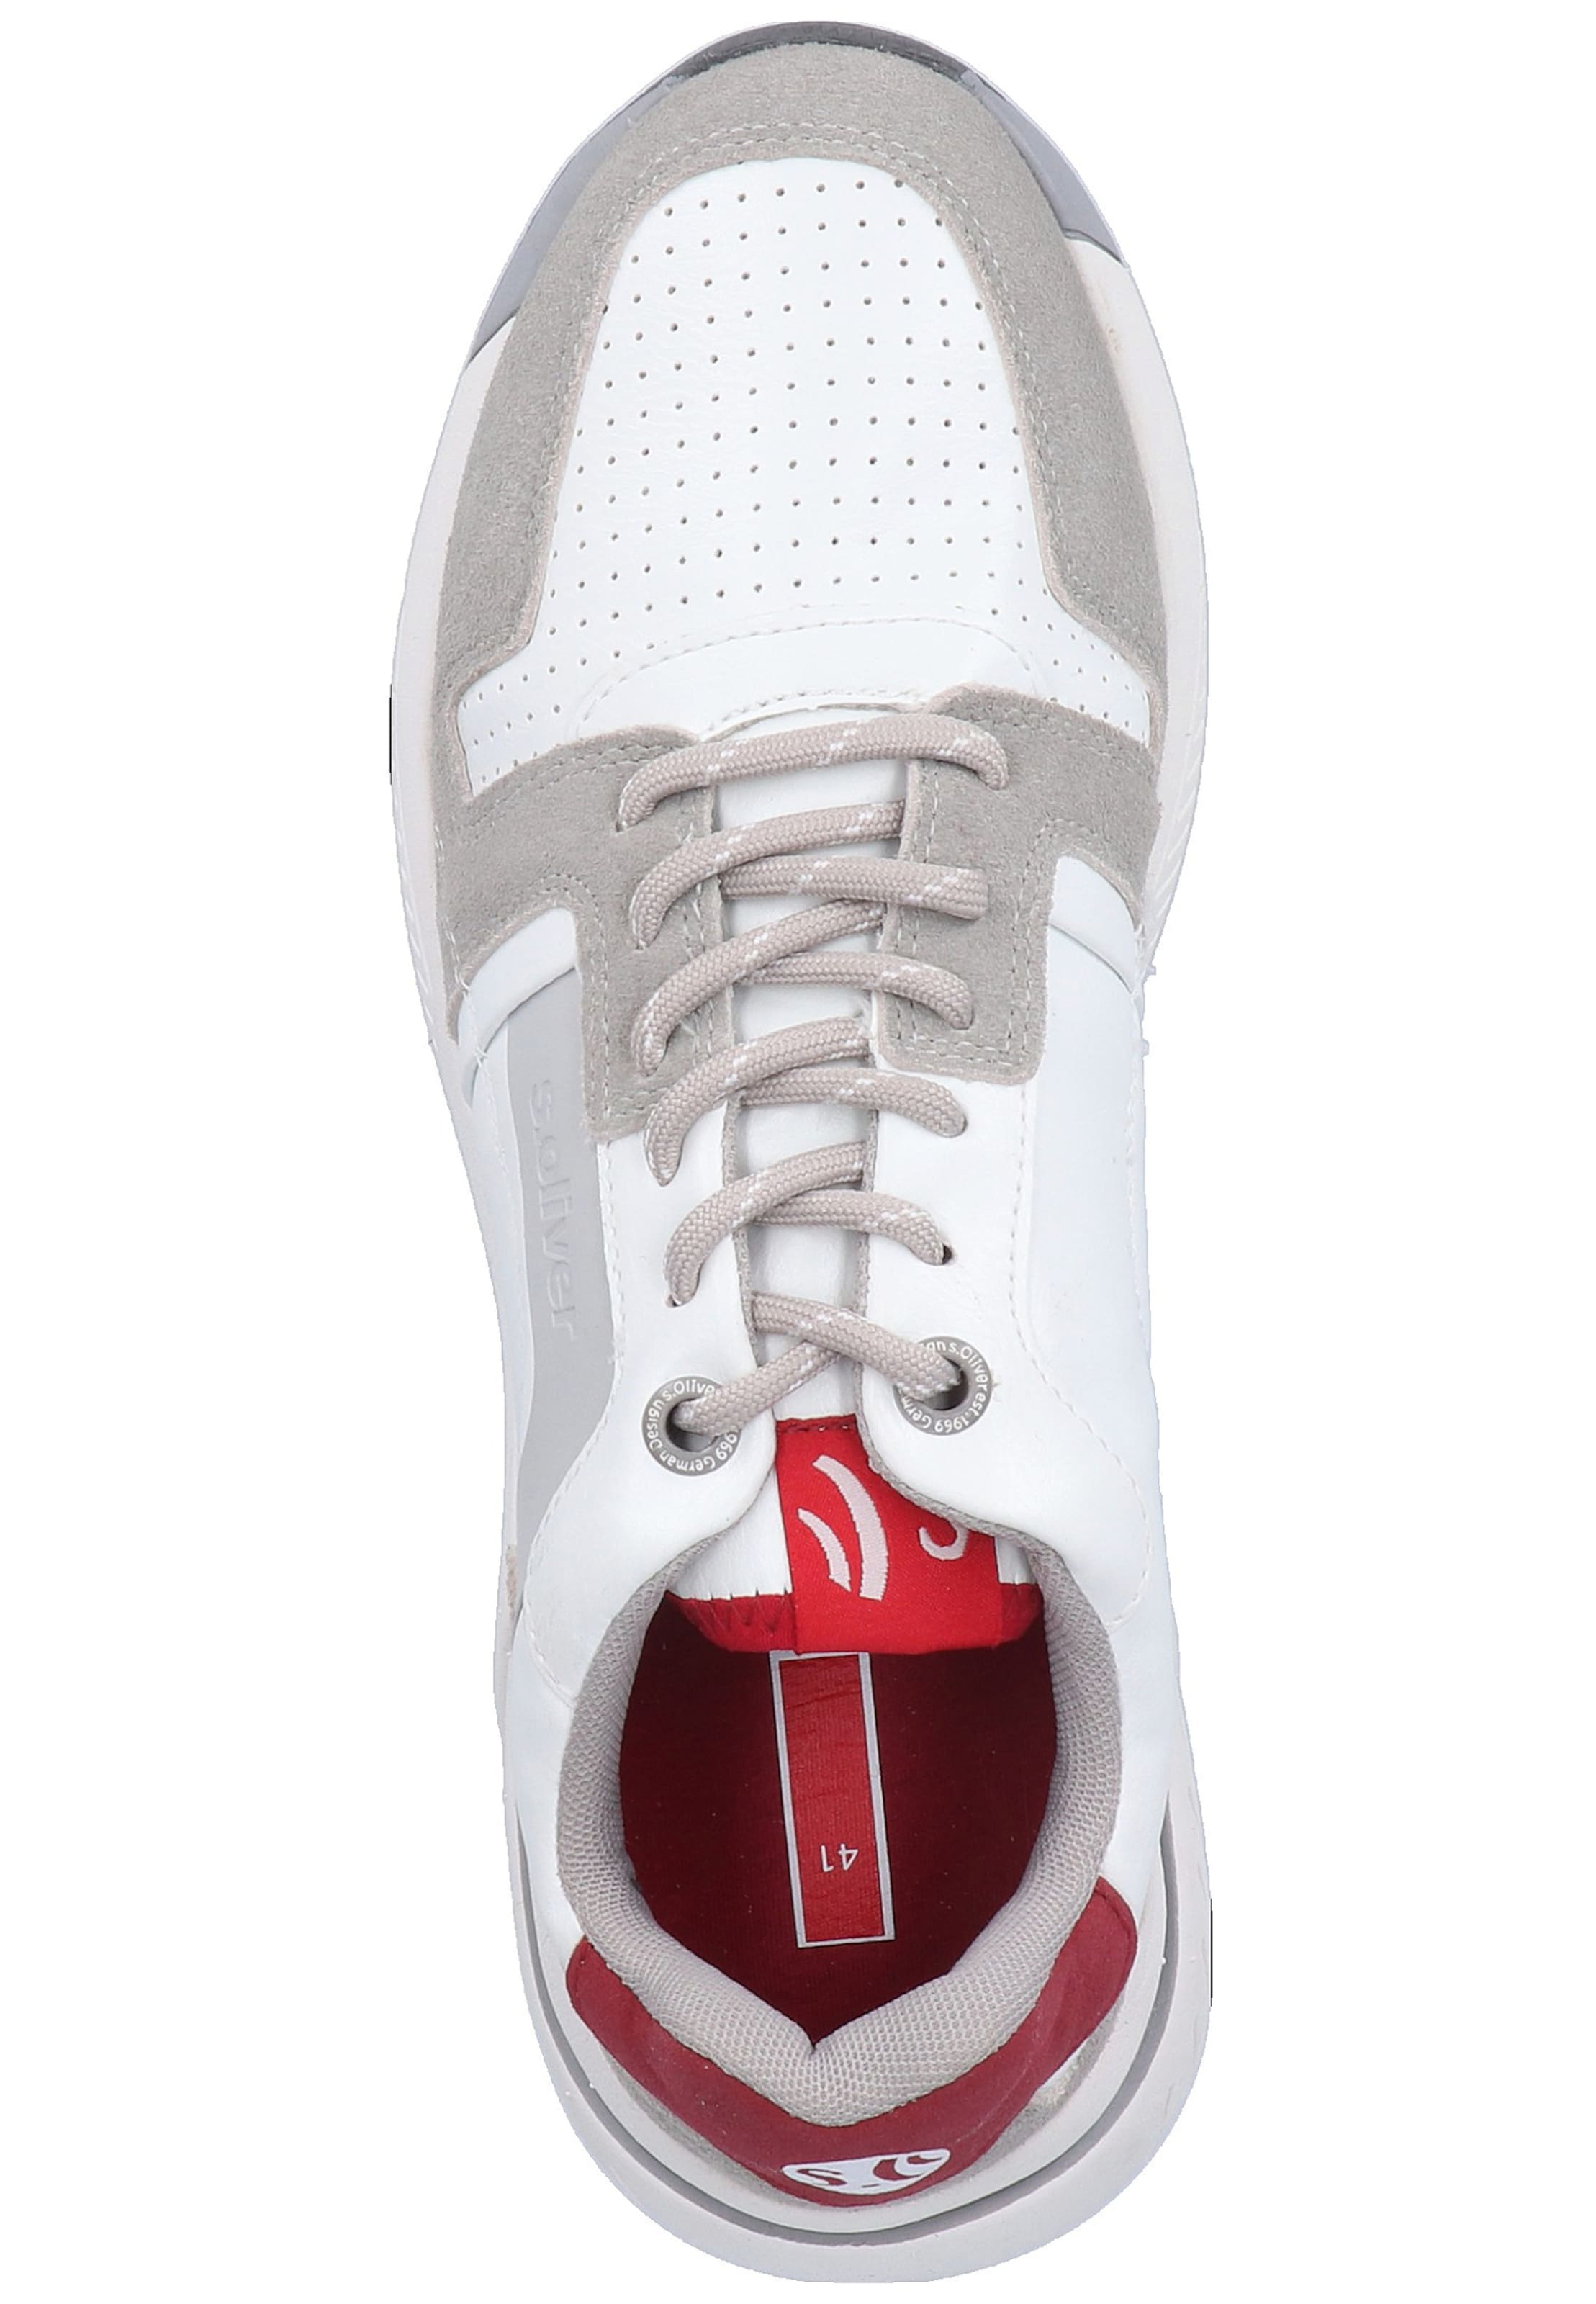 S GreigeRot Red Weiß Label Sneaker In oliver wk8PZnNOX0